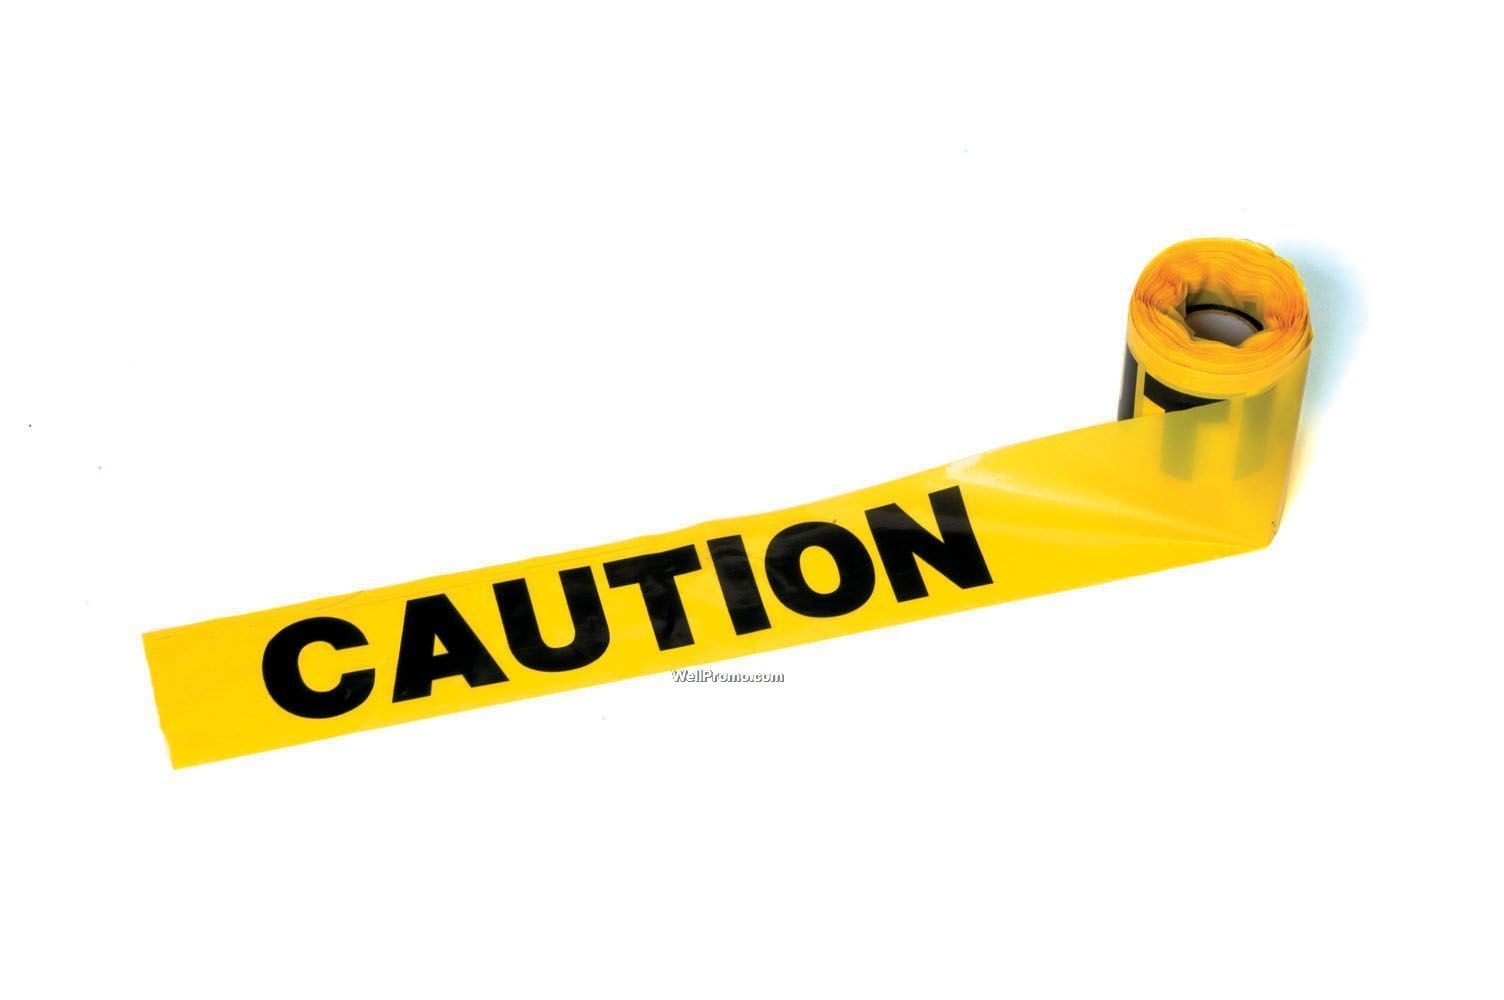 Safe Wallpapers in addition Under Construction Backgrounds 548904 further Wall Mounted Belt Barrier 3m Or 4m Long P1132 as well Stock Illustration Construction Warning Border On A besides Safety Border. on hazard tape border